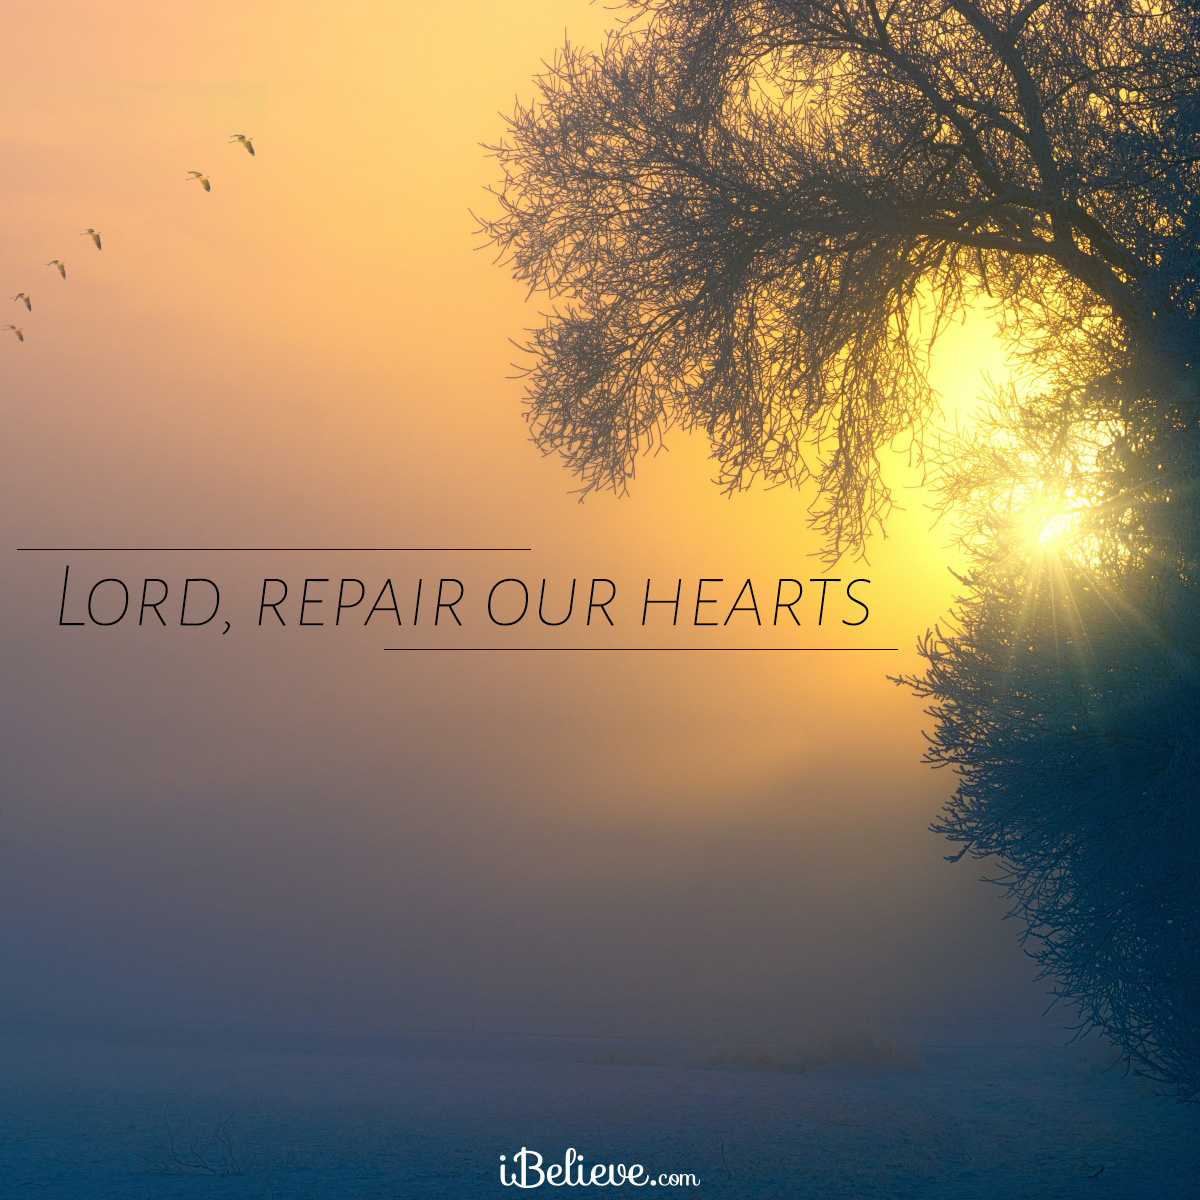 Lord, repair our hearts, inspirational image